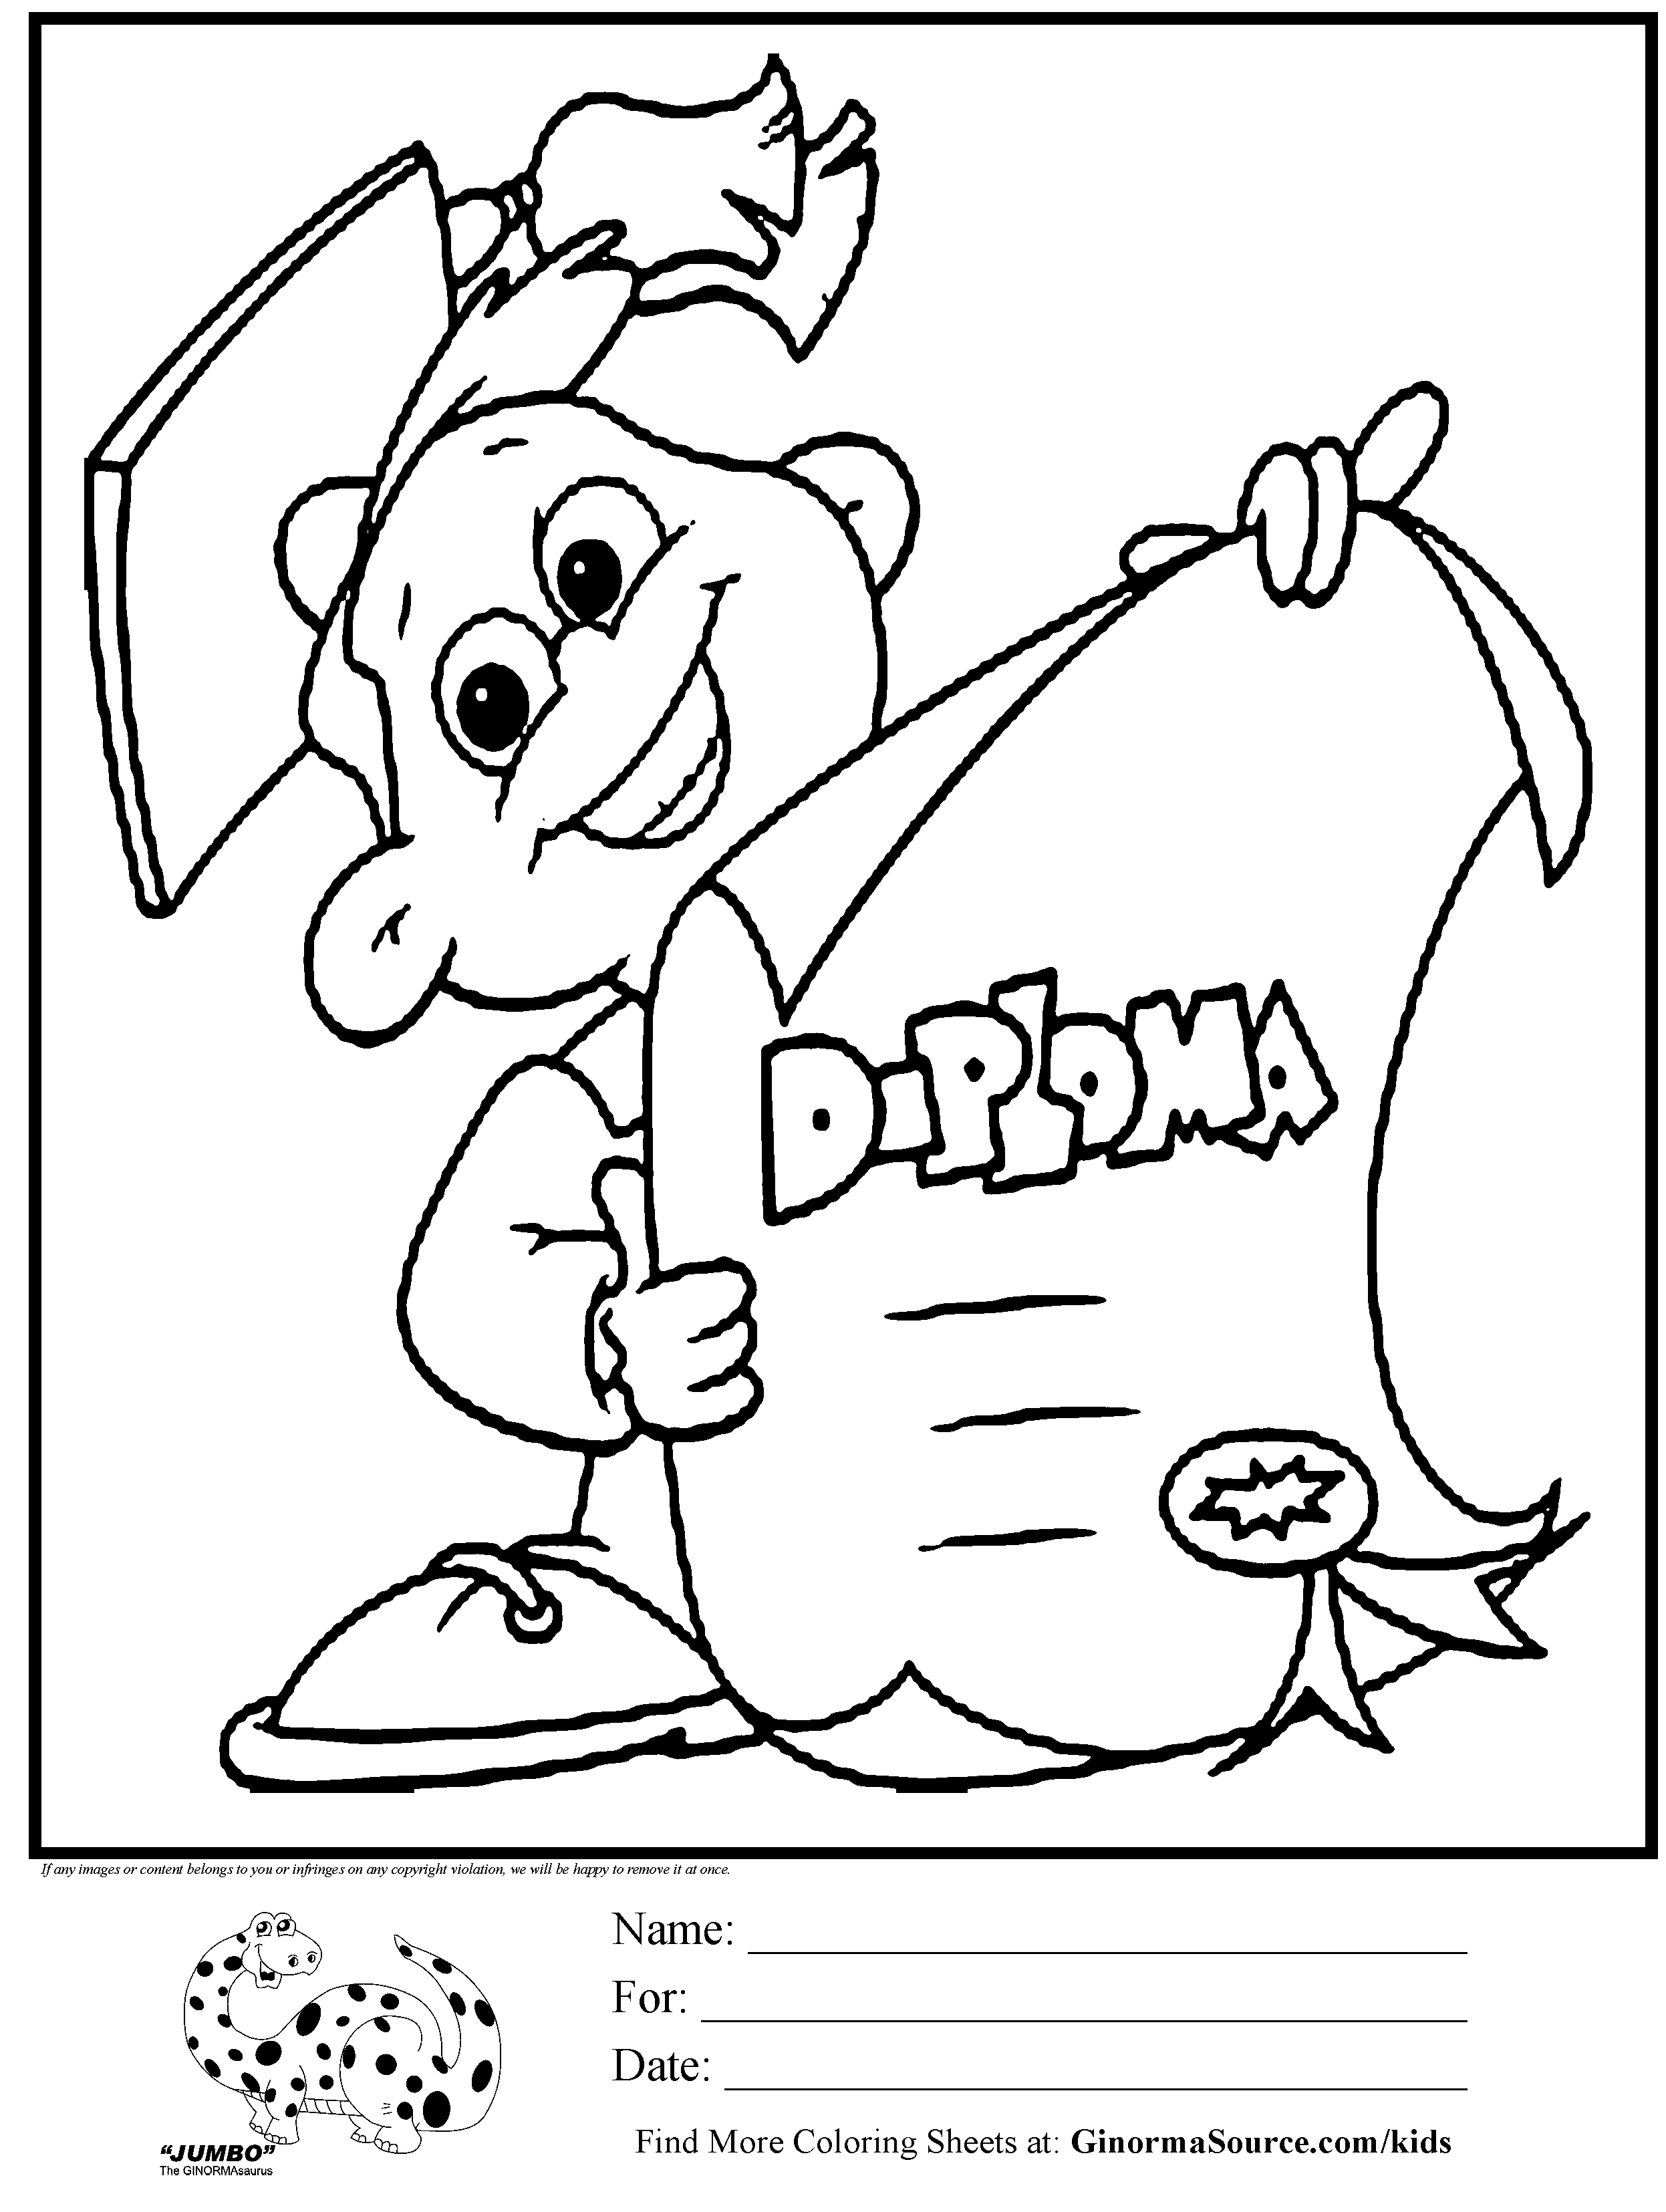 coloring pages to color kinder - photo#6